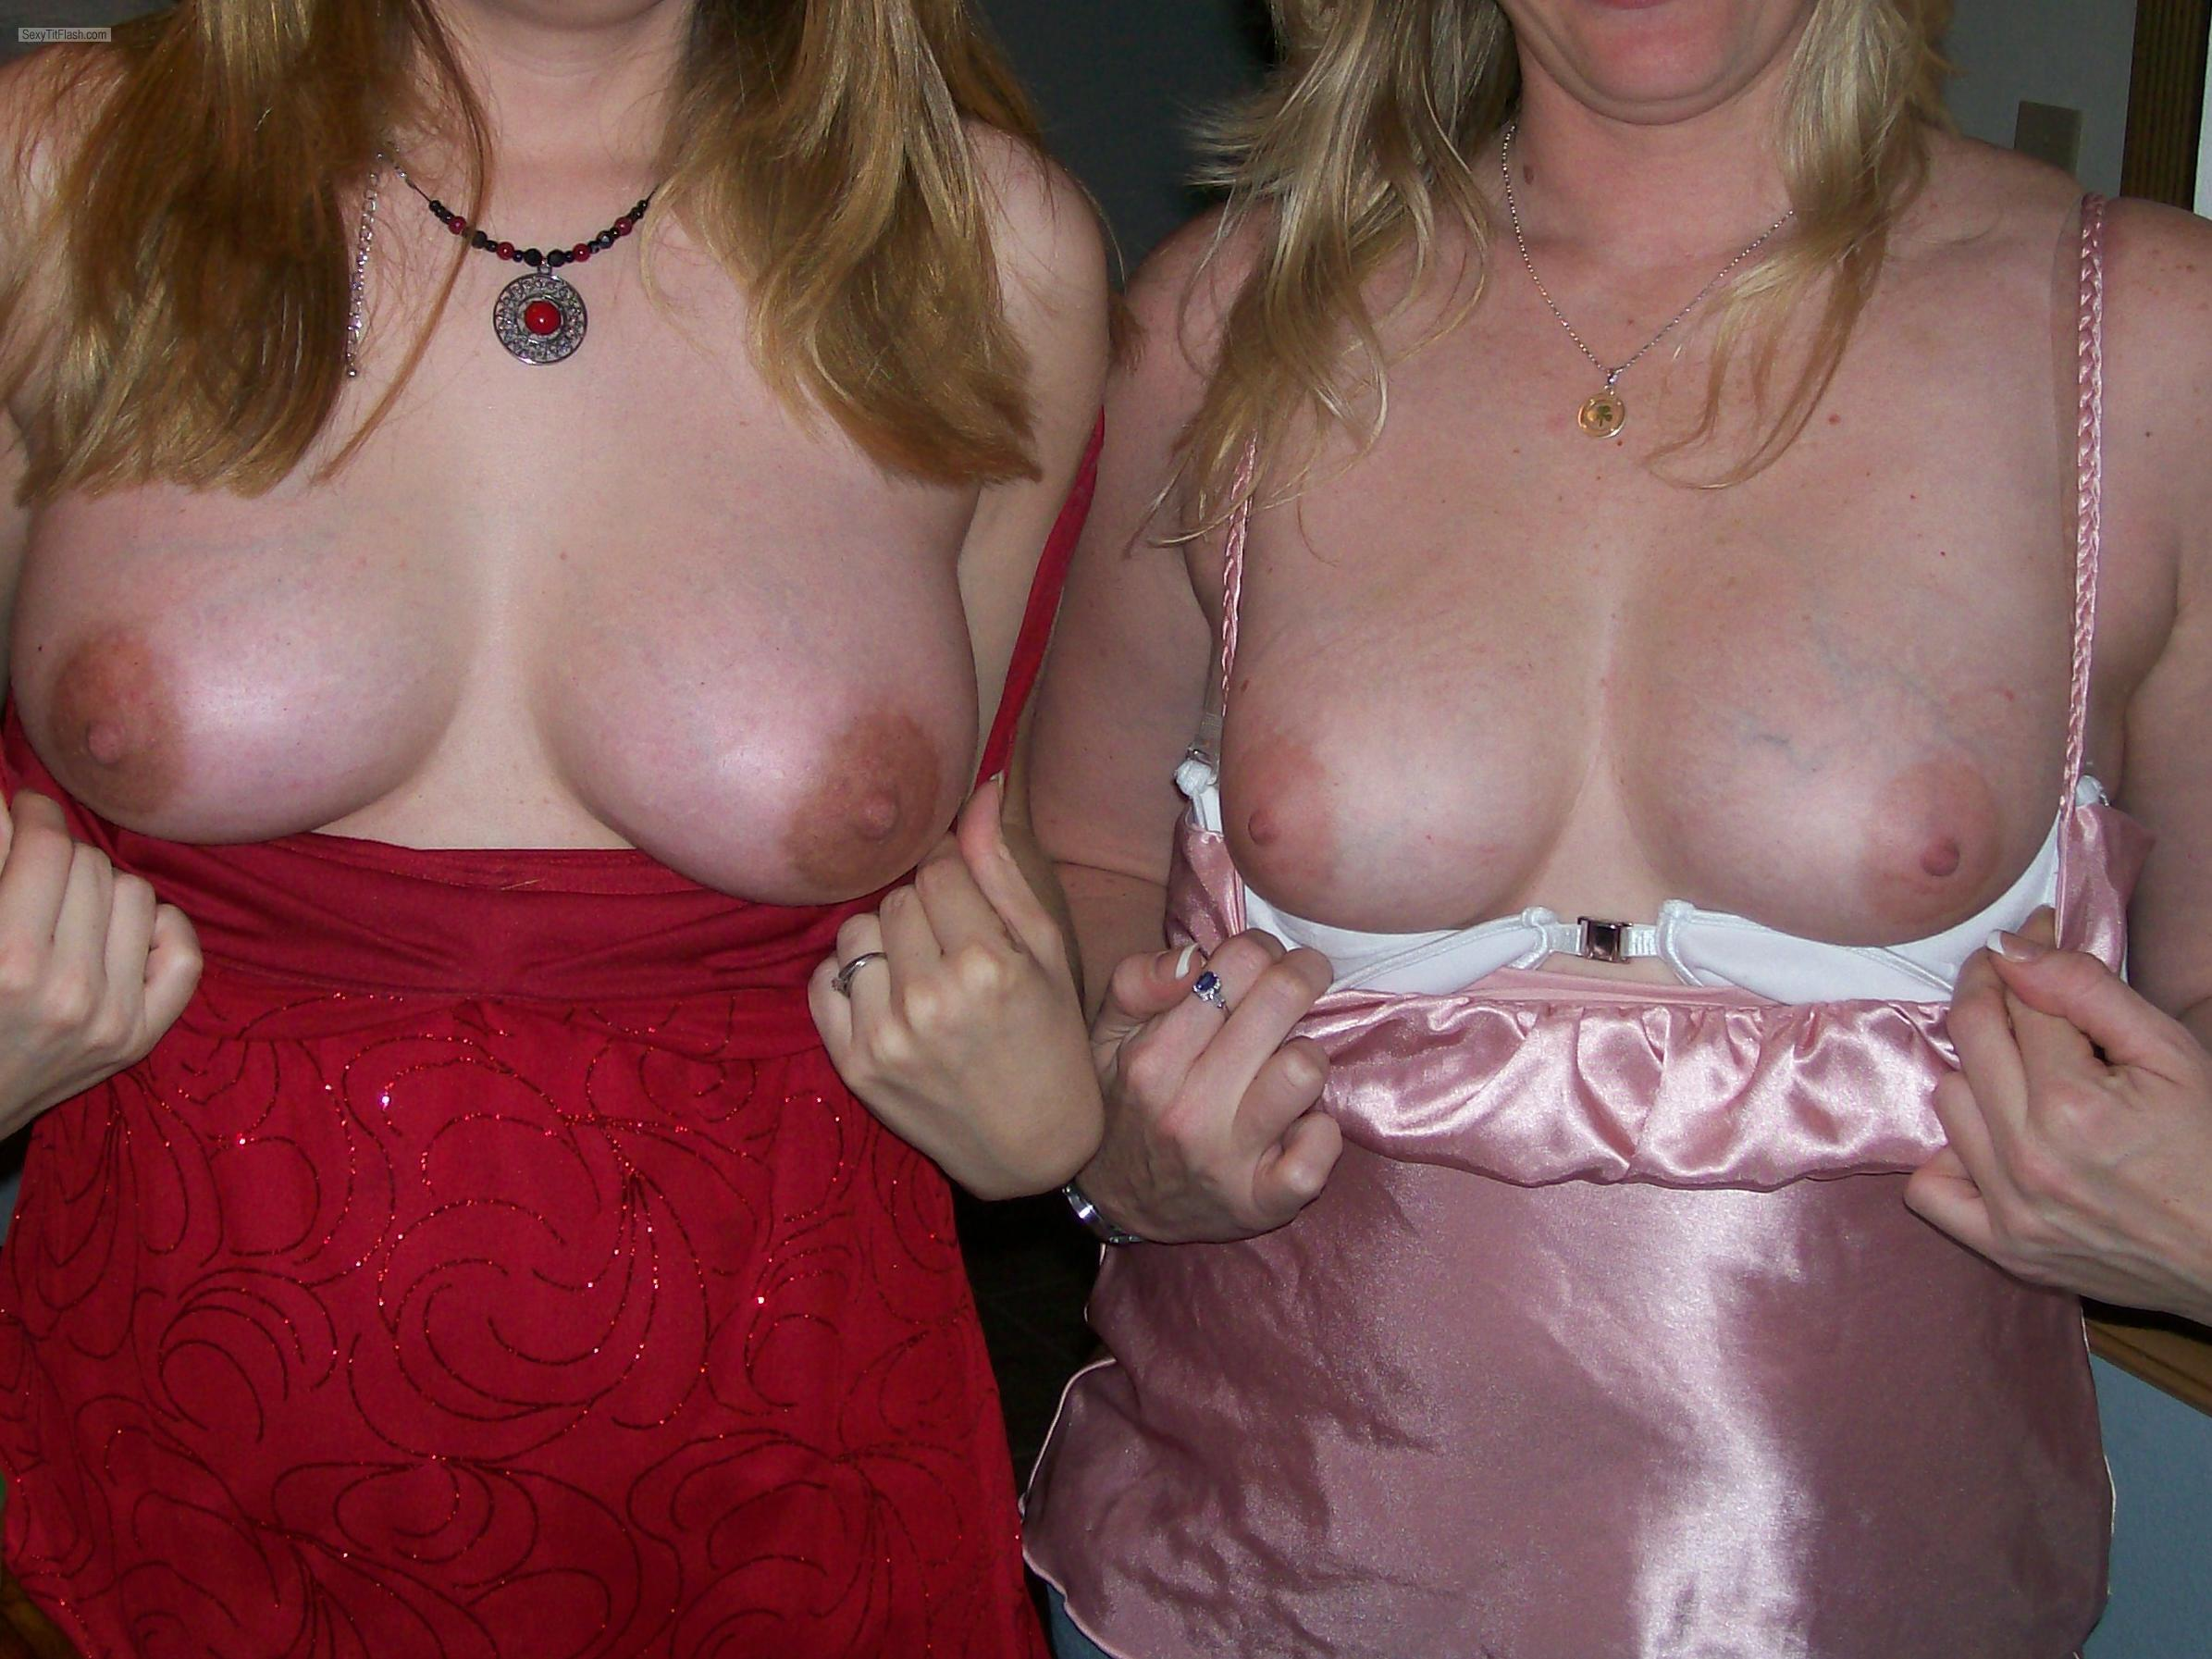 wife and her friend porn